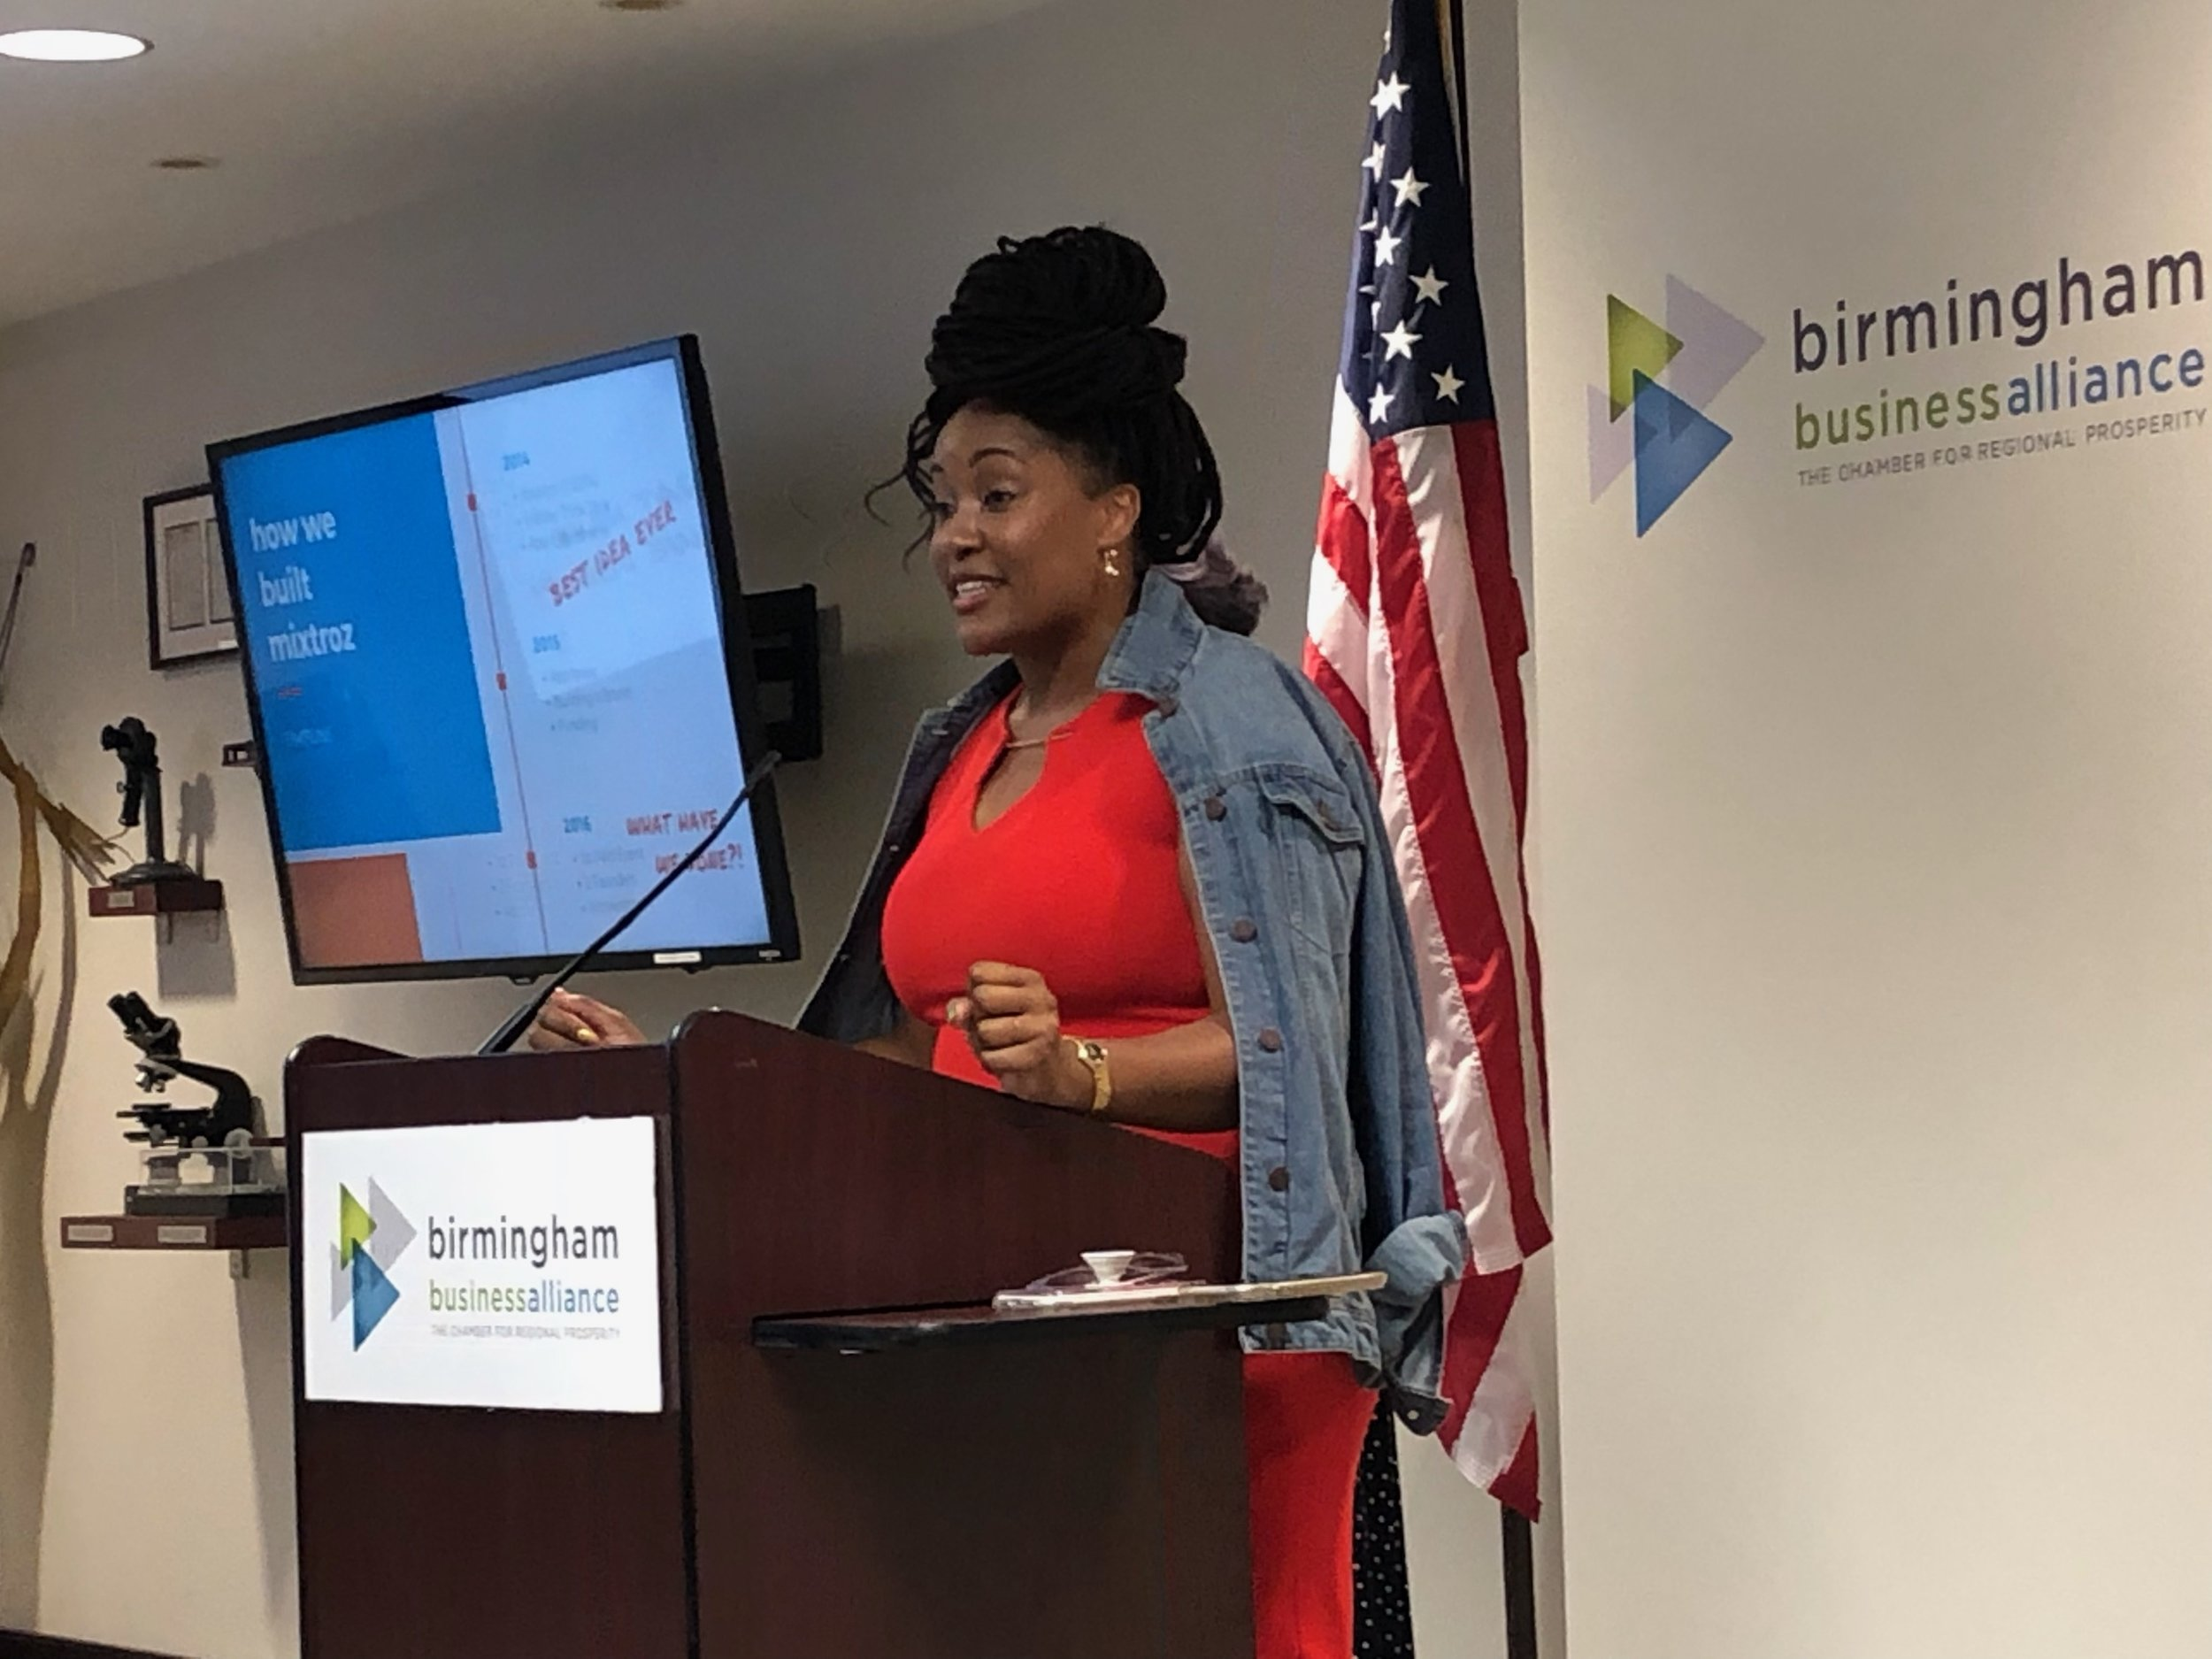 Mixtroz's Kerry Schrader and Ashlee Ammons (pictured above) spoke to the Birmingham Business Alliance's Birmingham Regional Enterprise Council (BREC) about the highs and lows of becoming an entrepreneur.